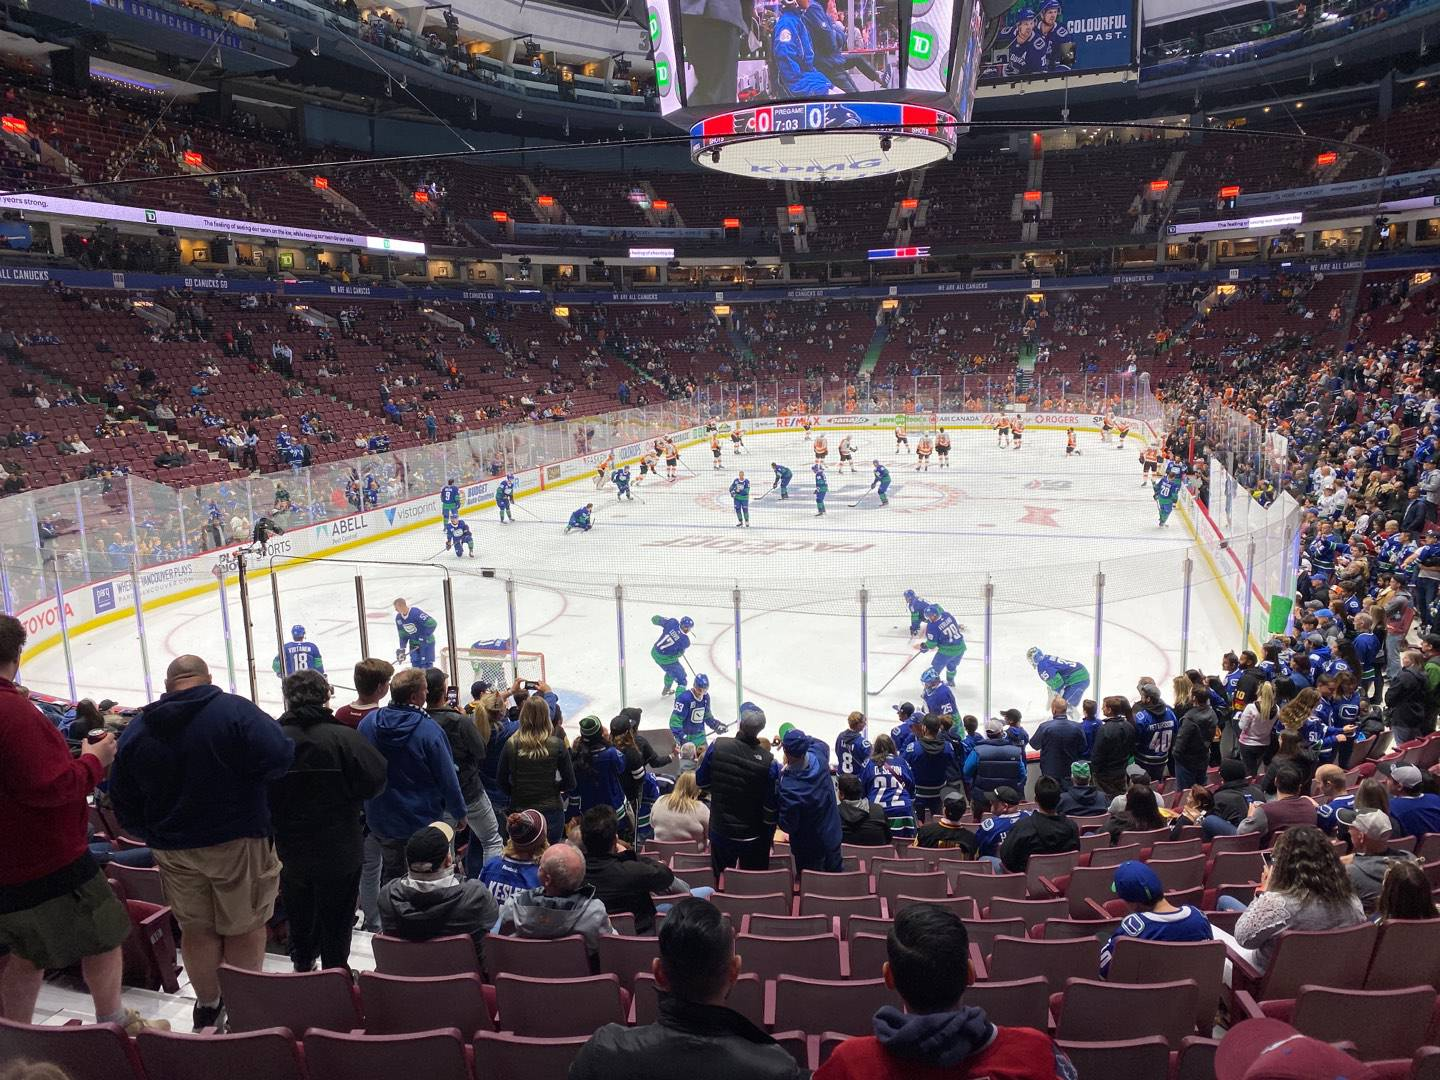 Rogers Arena Section 122 Row 16 Seat 7